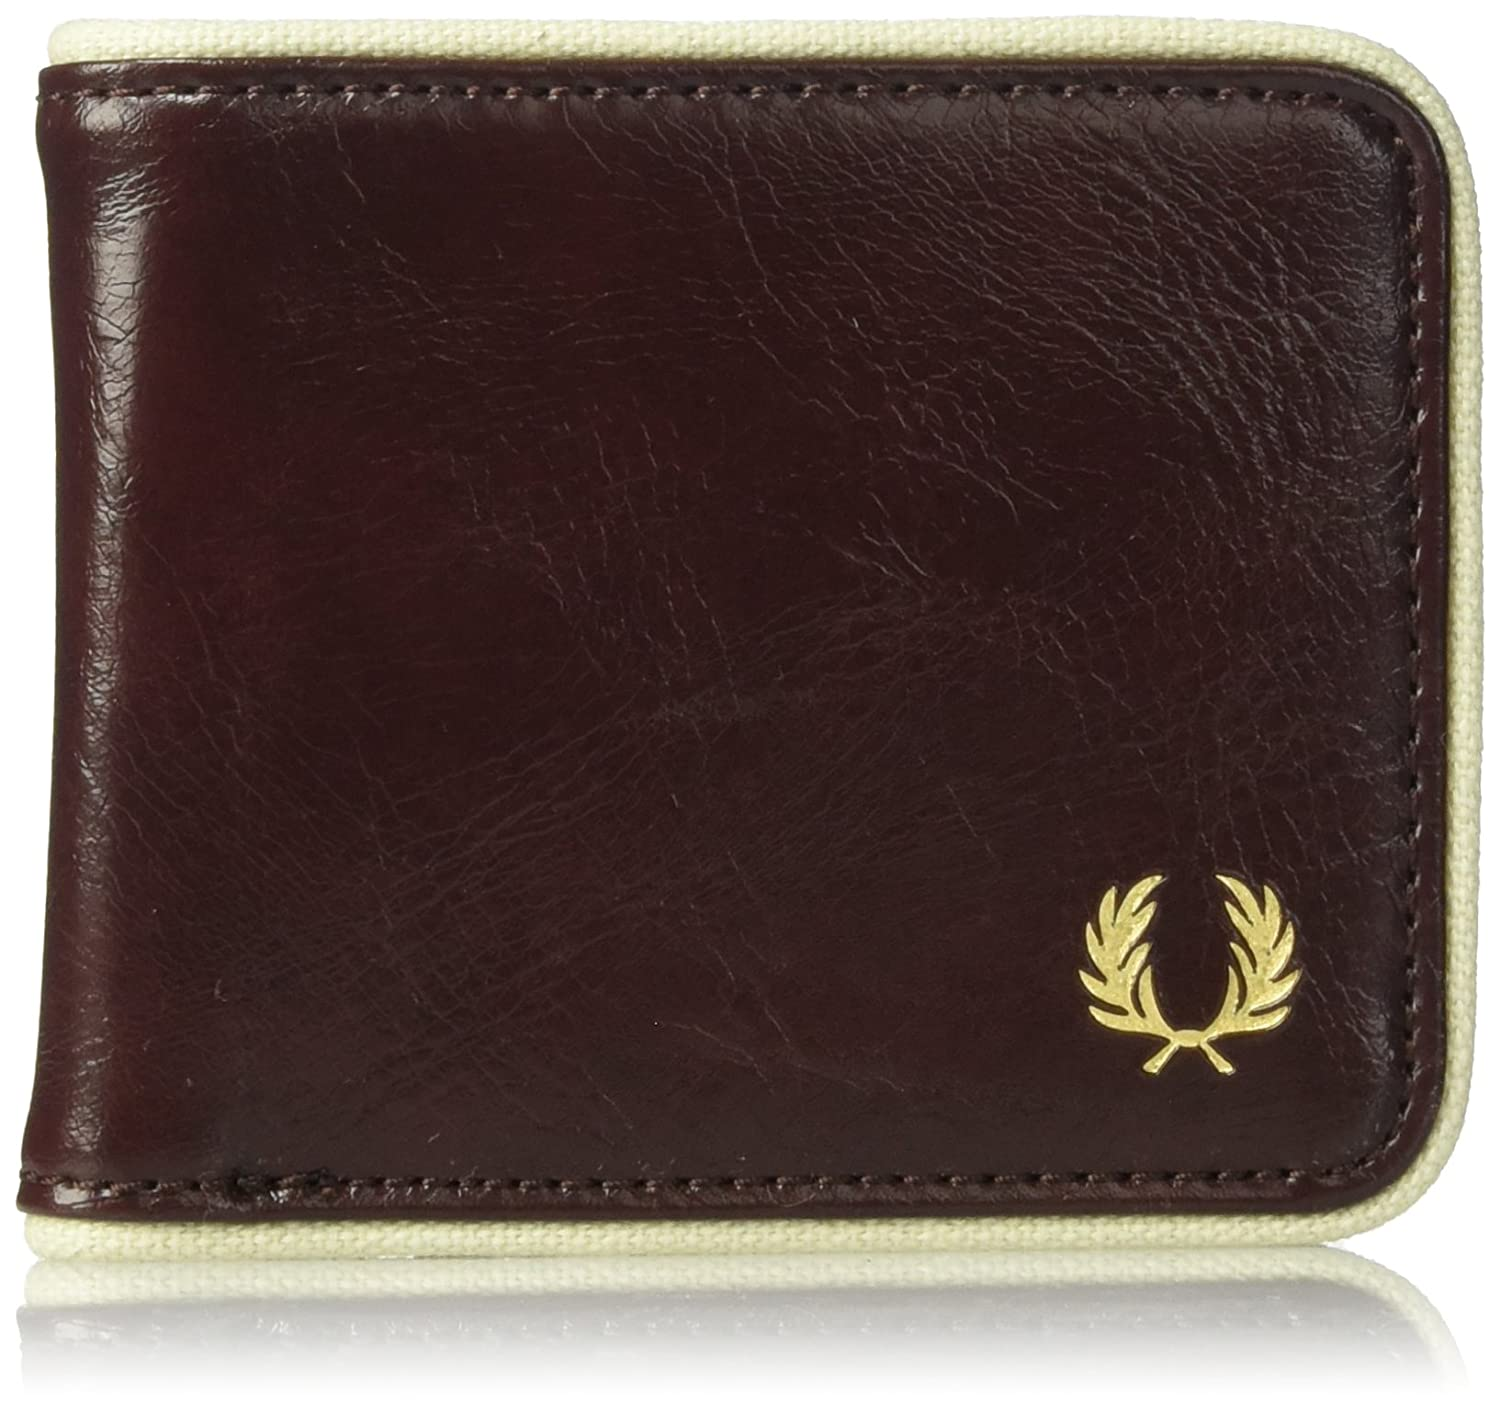 Fred Perry Men's Classic Billfold Wallet, L2234